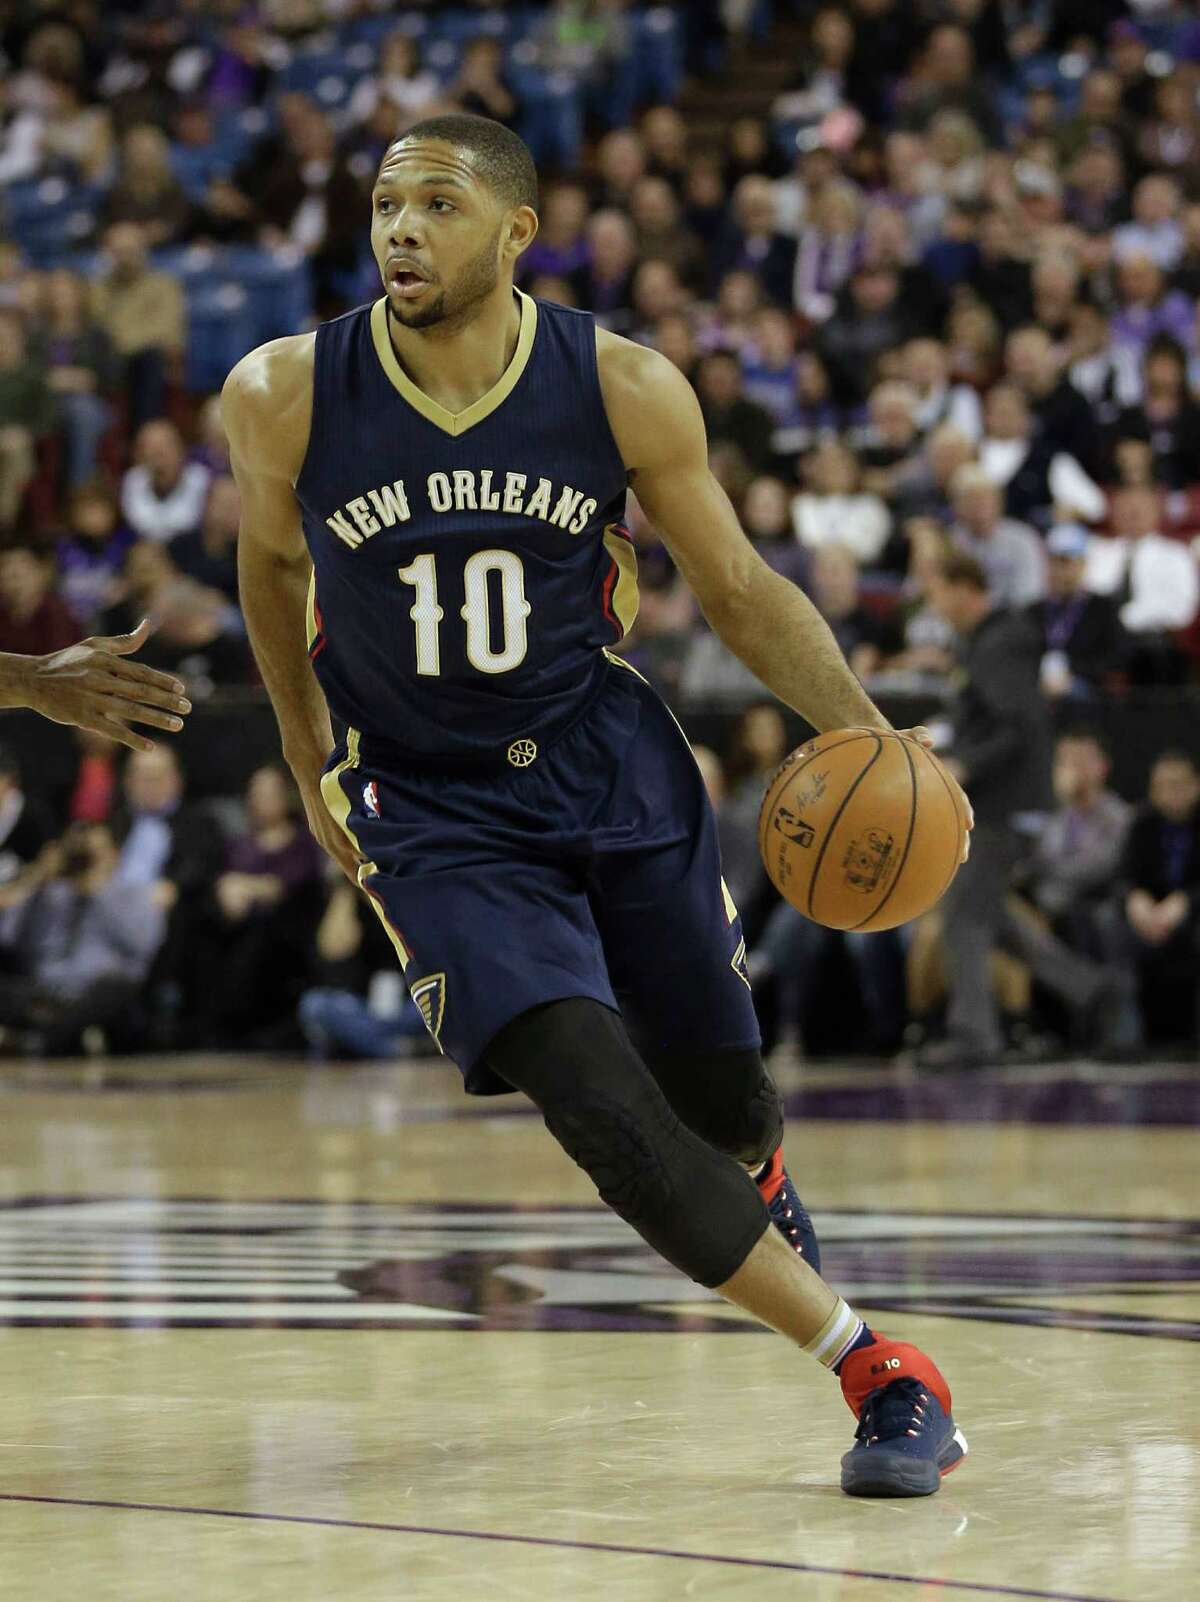 New Orleans Pelicans guard Eric Gordon drives against the Sacramento Kings during the first quarter of an NBA basketball game, Wednesday, Jan. 13, 2016, in Sacramento, Calif. The Pelicans won 109-97.(AP Photo/Rich Pedroncelli)